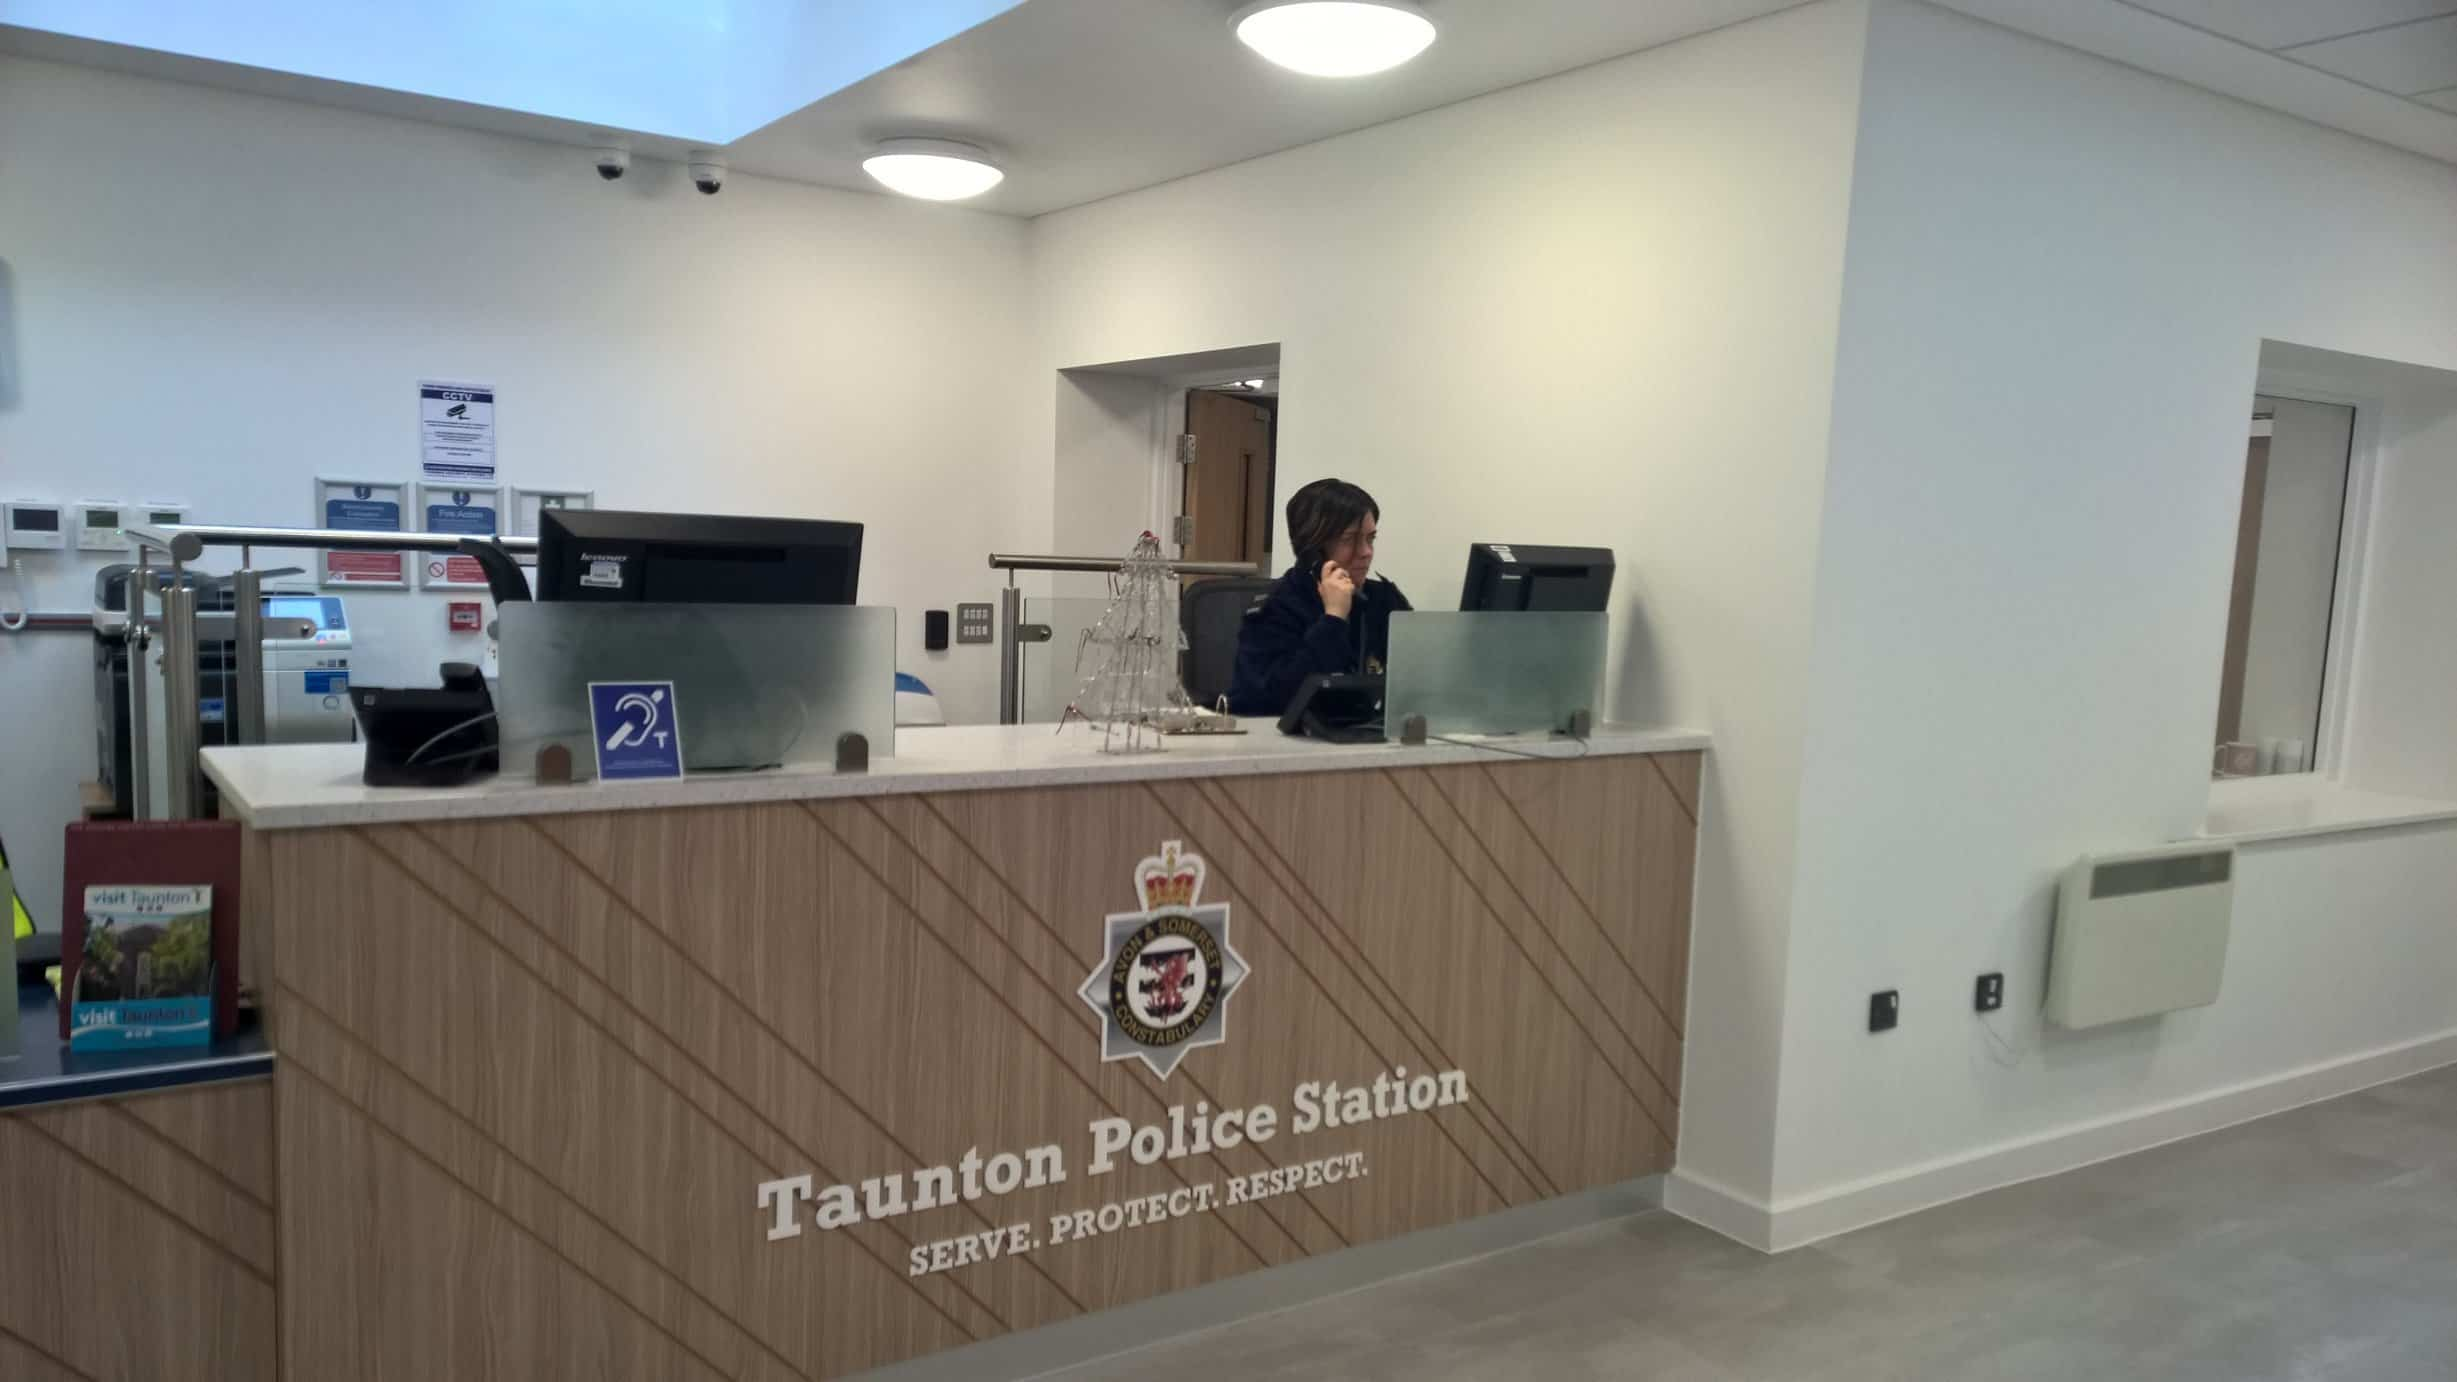 A new police station for Taunton opens